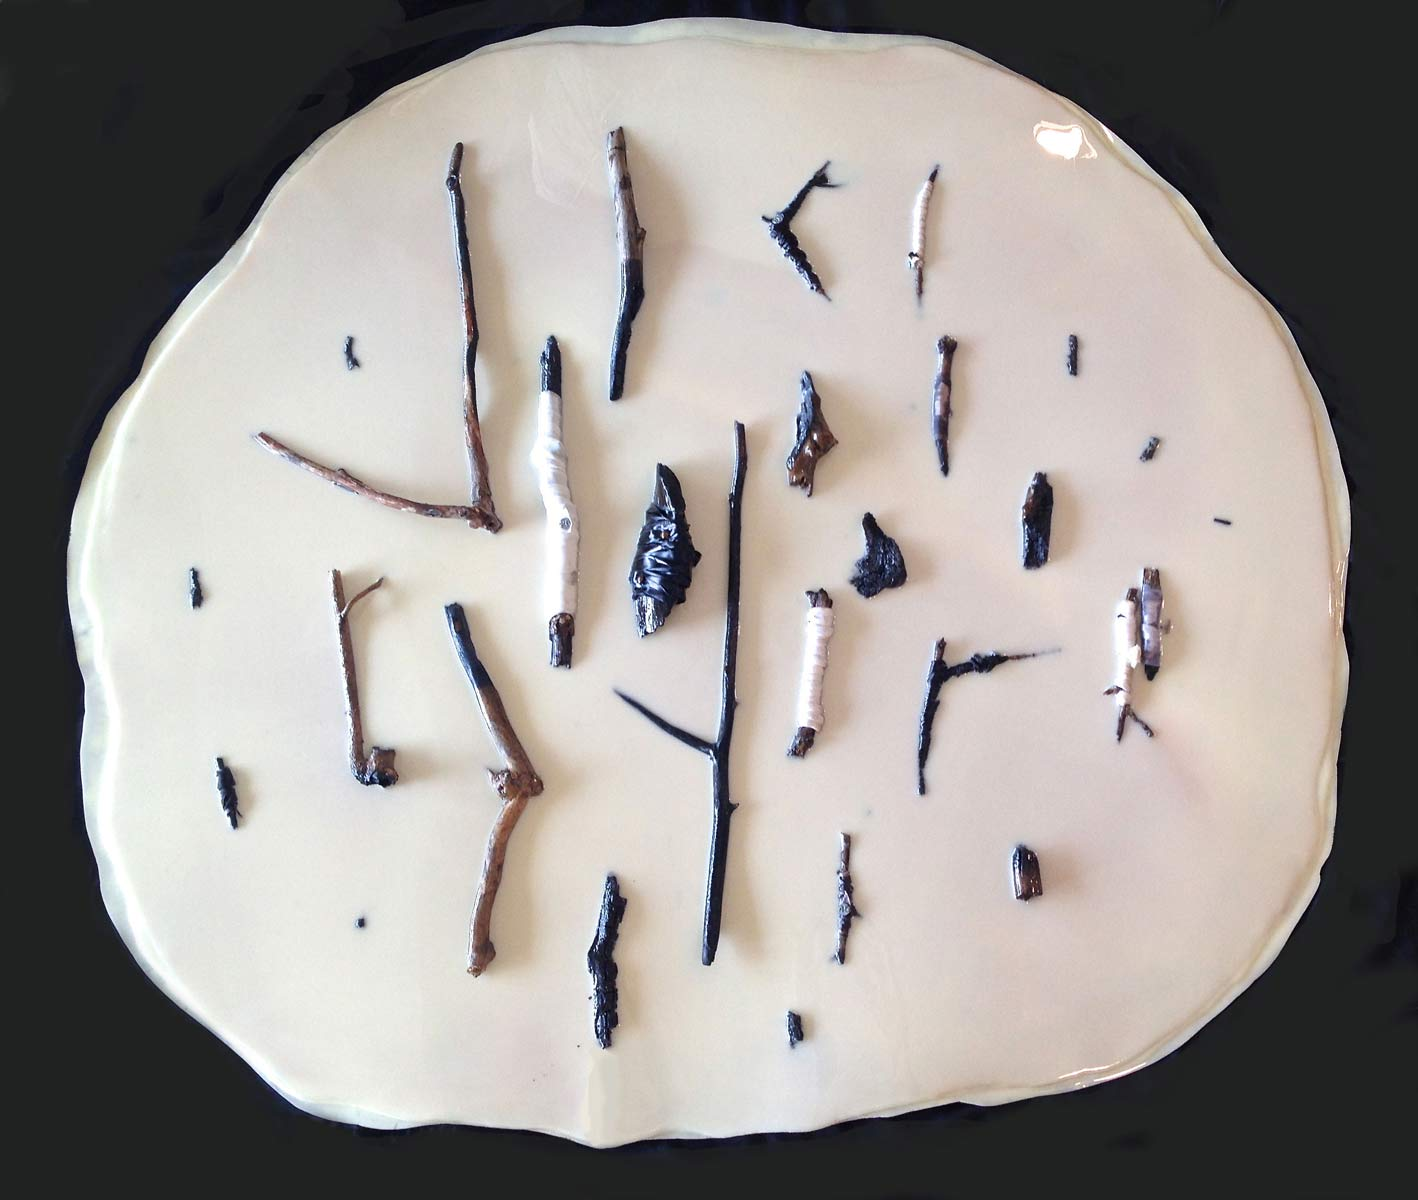 Artifacts, breast milk, resin, charred sticks, ribbon, tacks, 54 inches in diameter, 2016